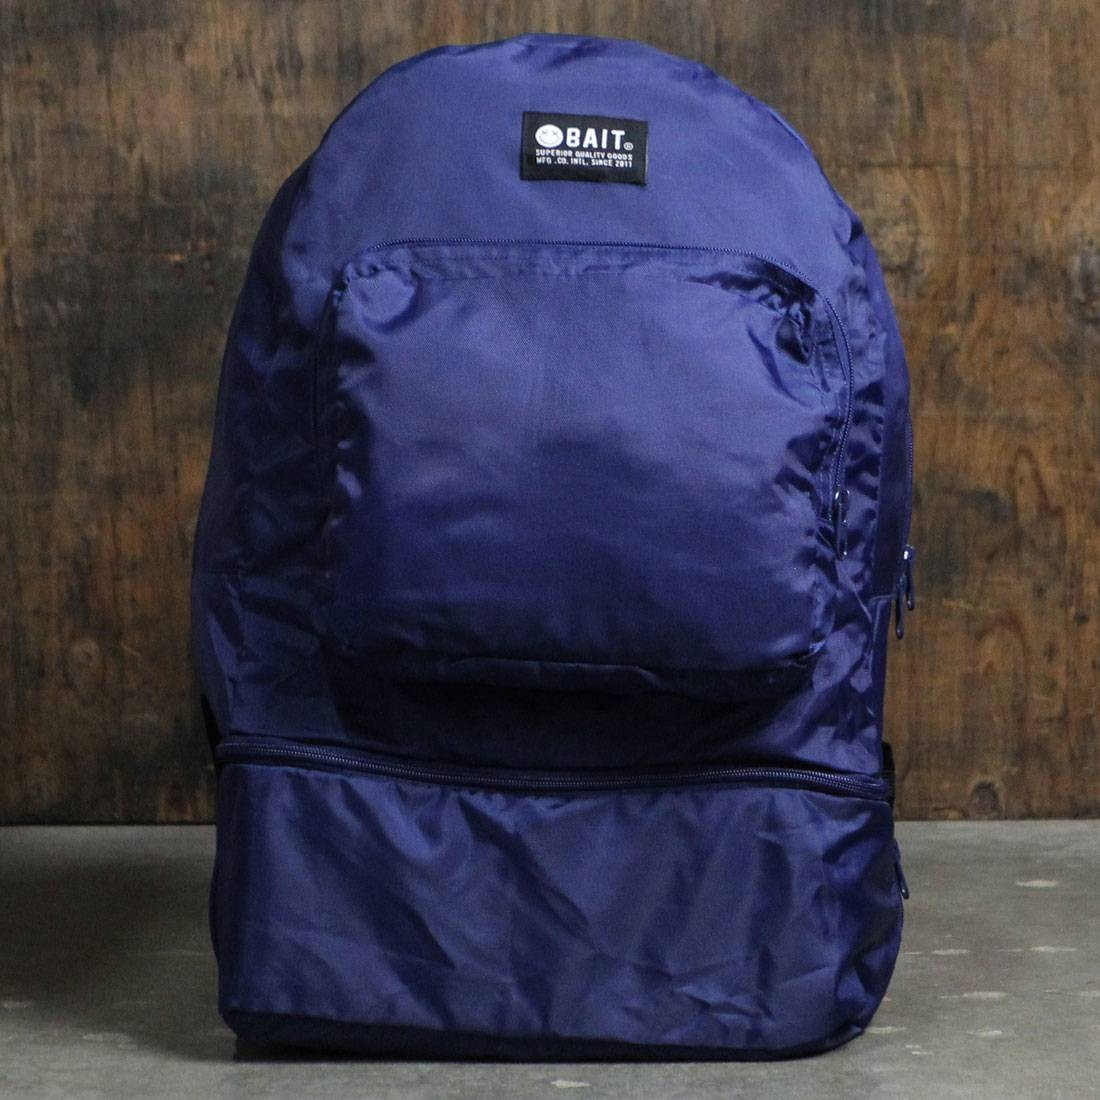 BAIT Lightweight Packable And Detachable Sneaker Nylon Backpack (blue)